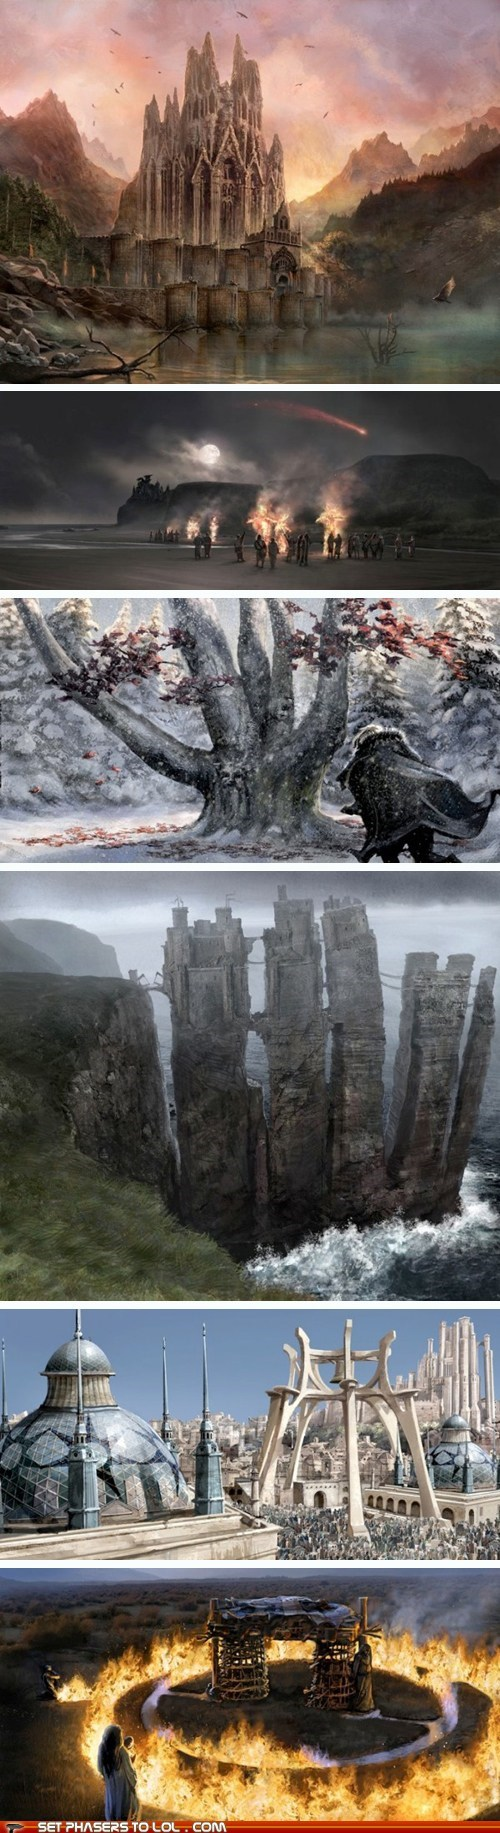 a song of ice and fire beautiful concept art Game of Thrones hbo Westeros